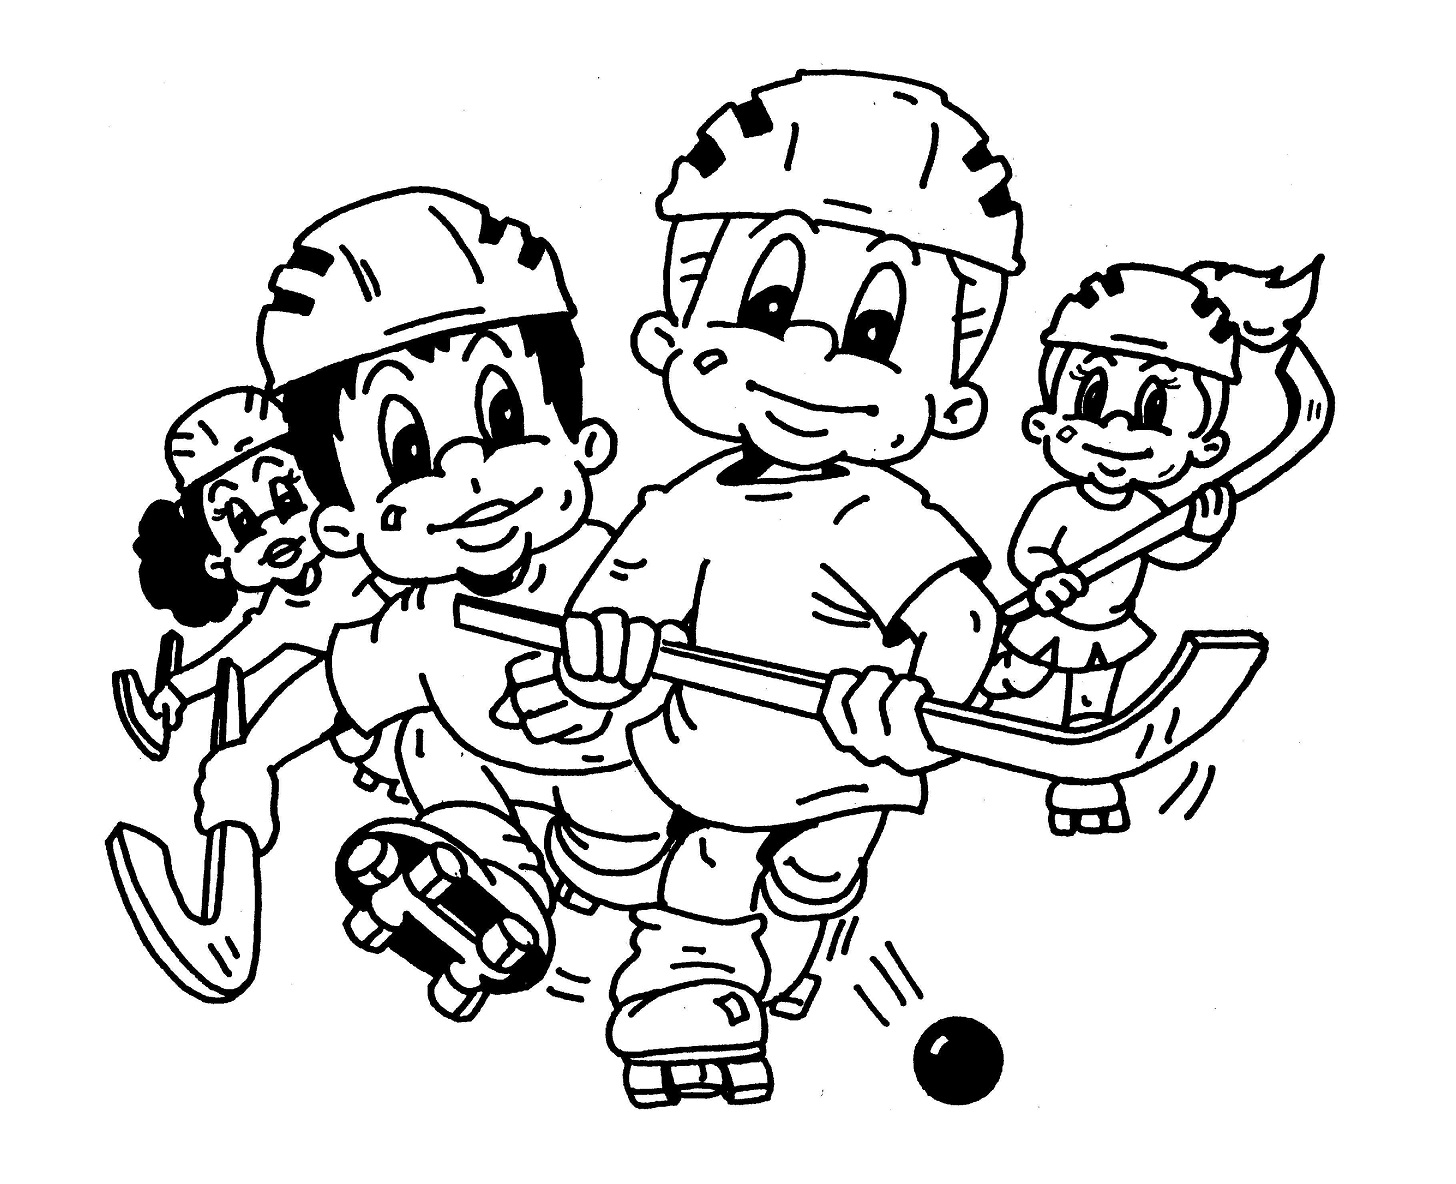 printable hockey coloring pages kids playing hockey coloring page free printable printable pages hockey coloring